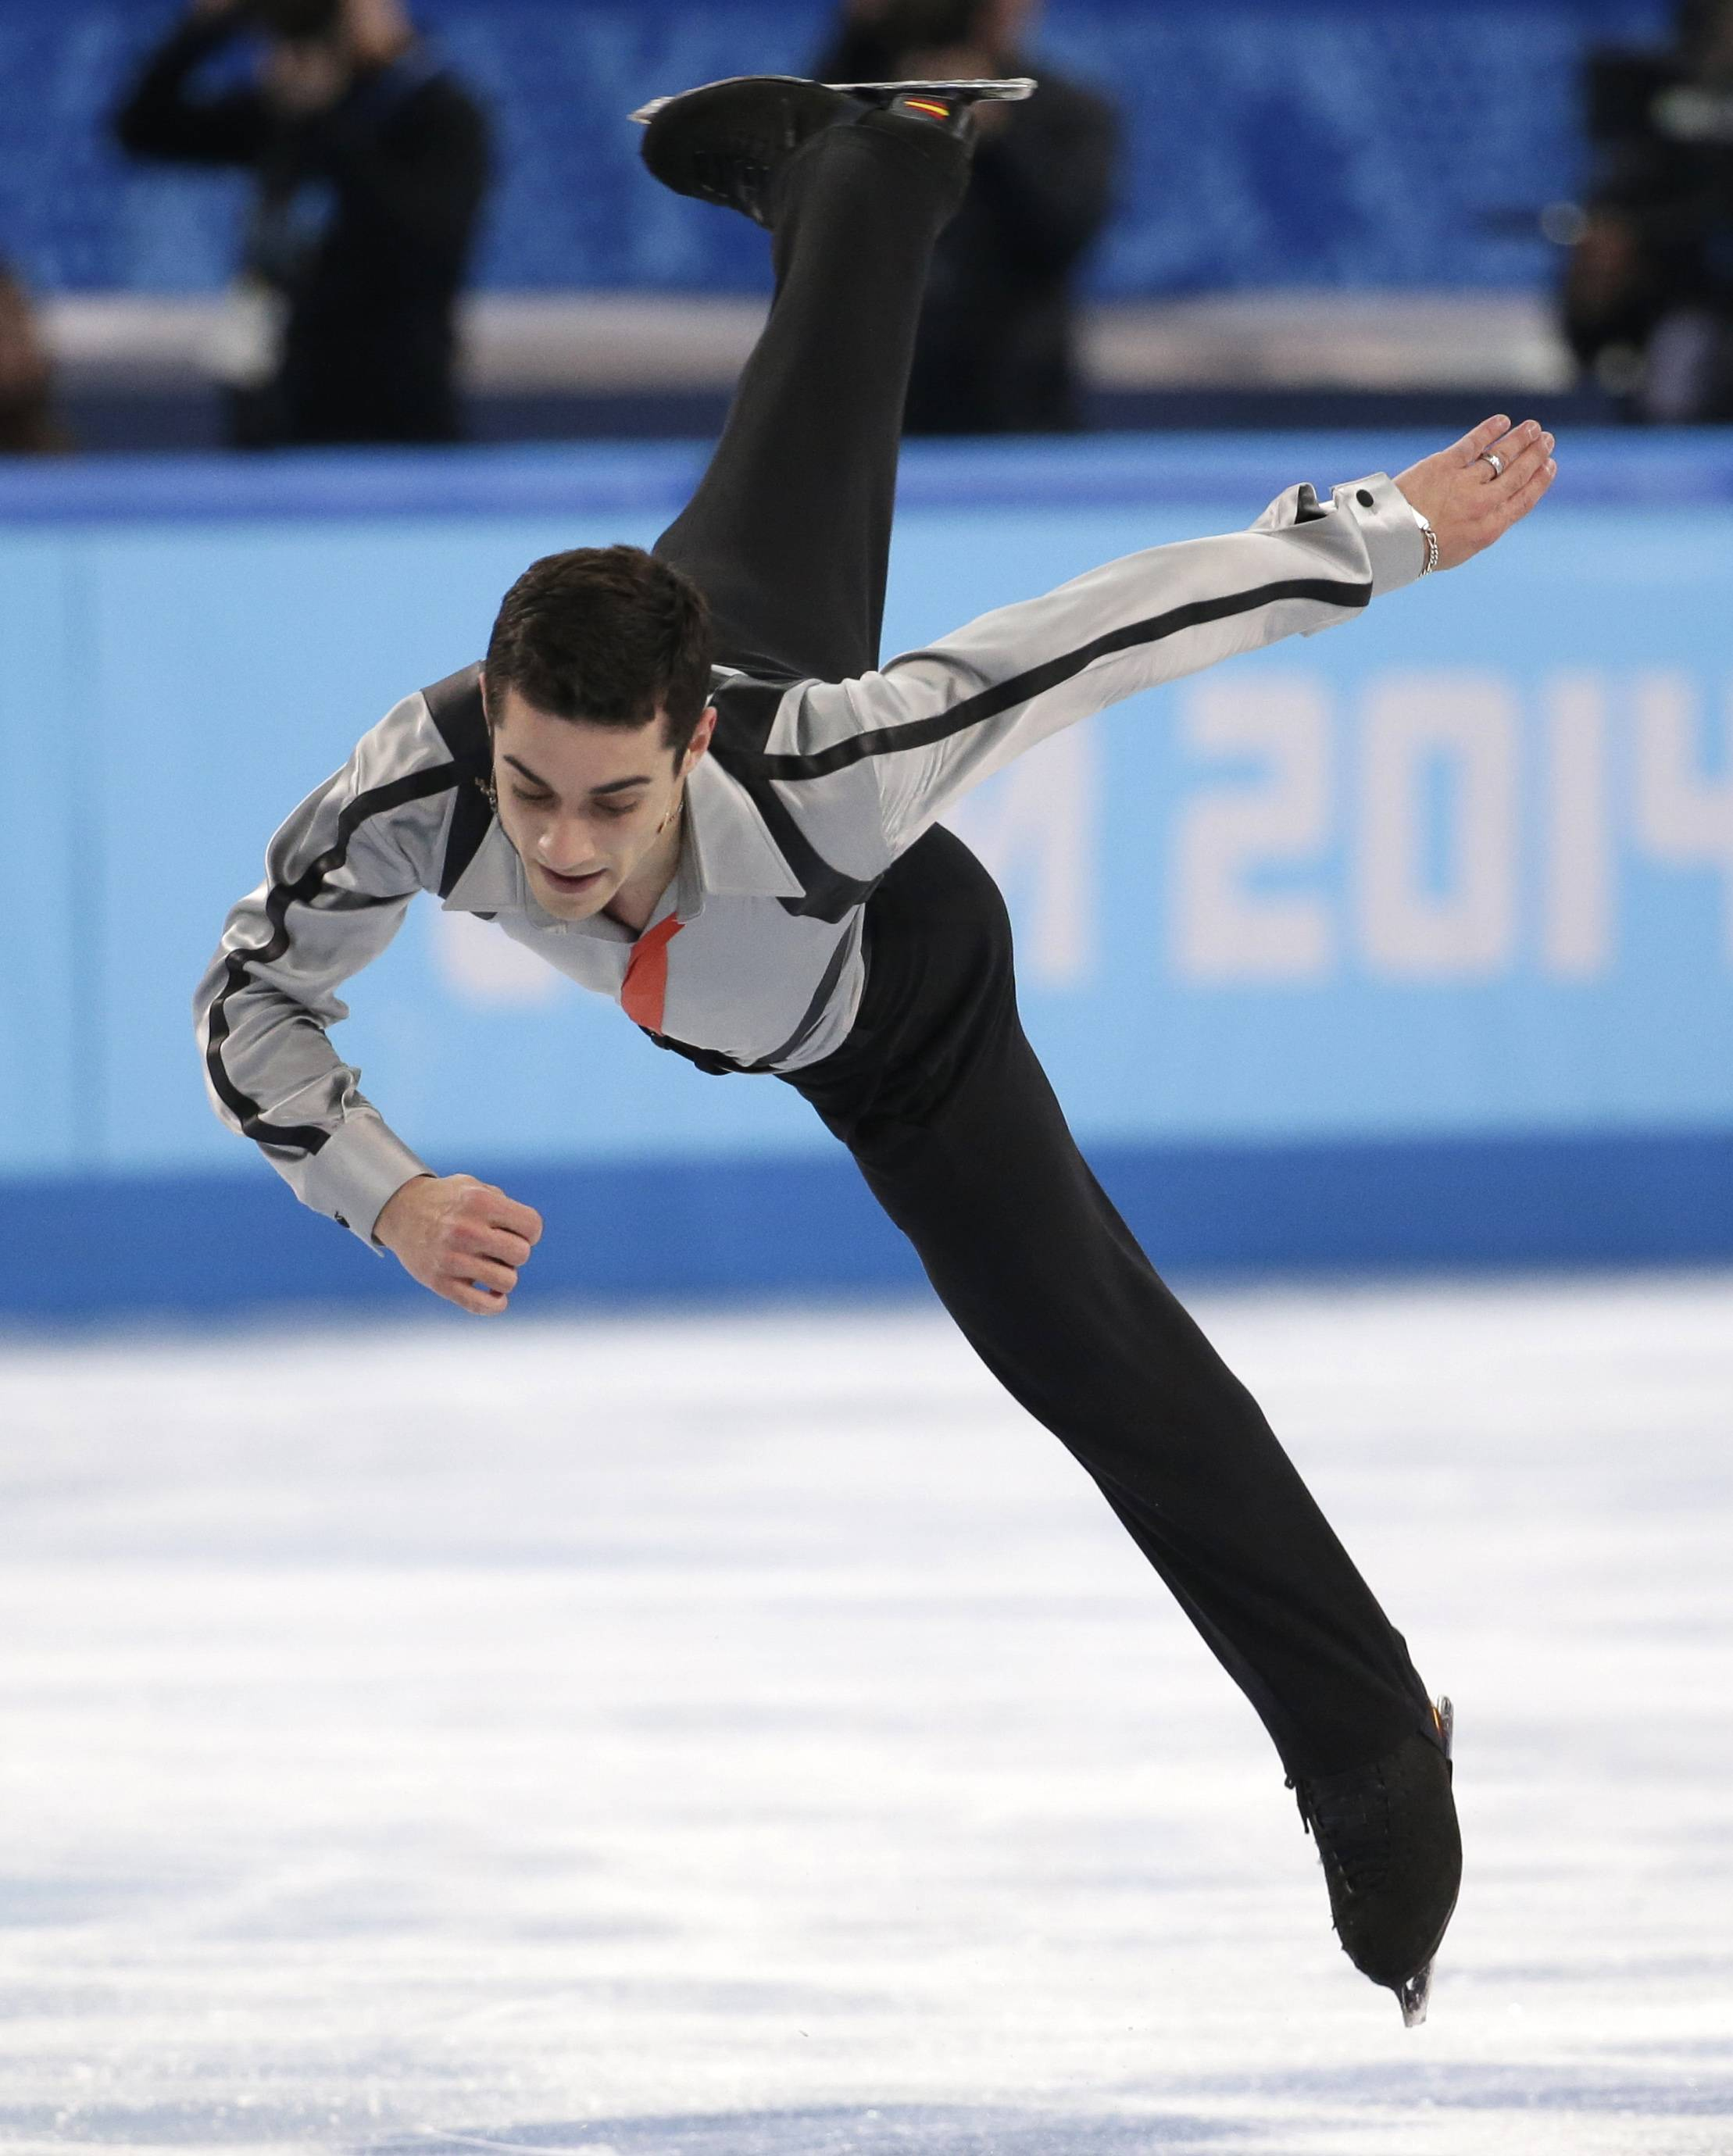 Javier Fernandez of Spain competes in the men's free skate figure skating final.